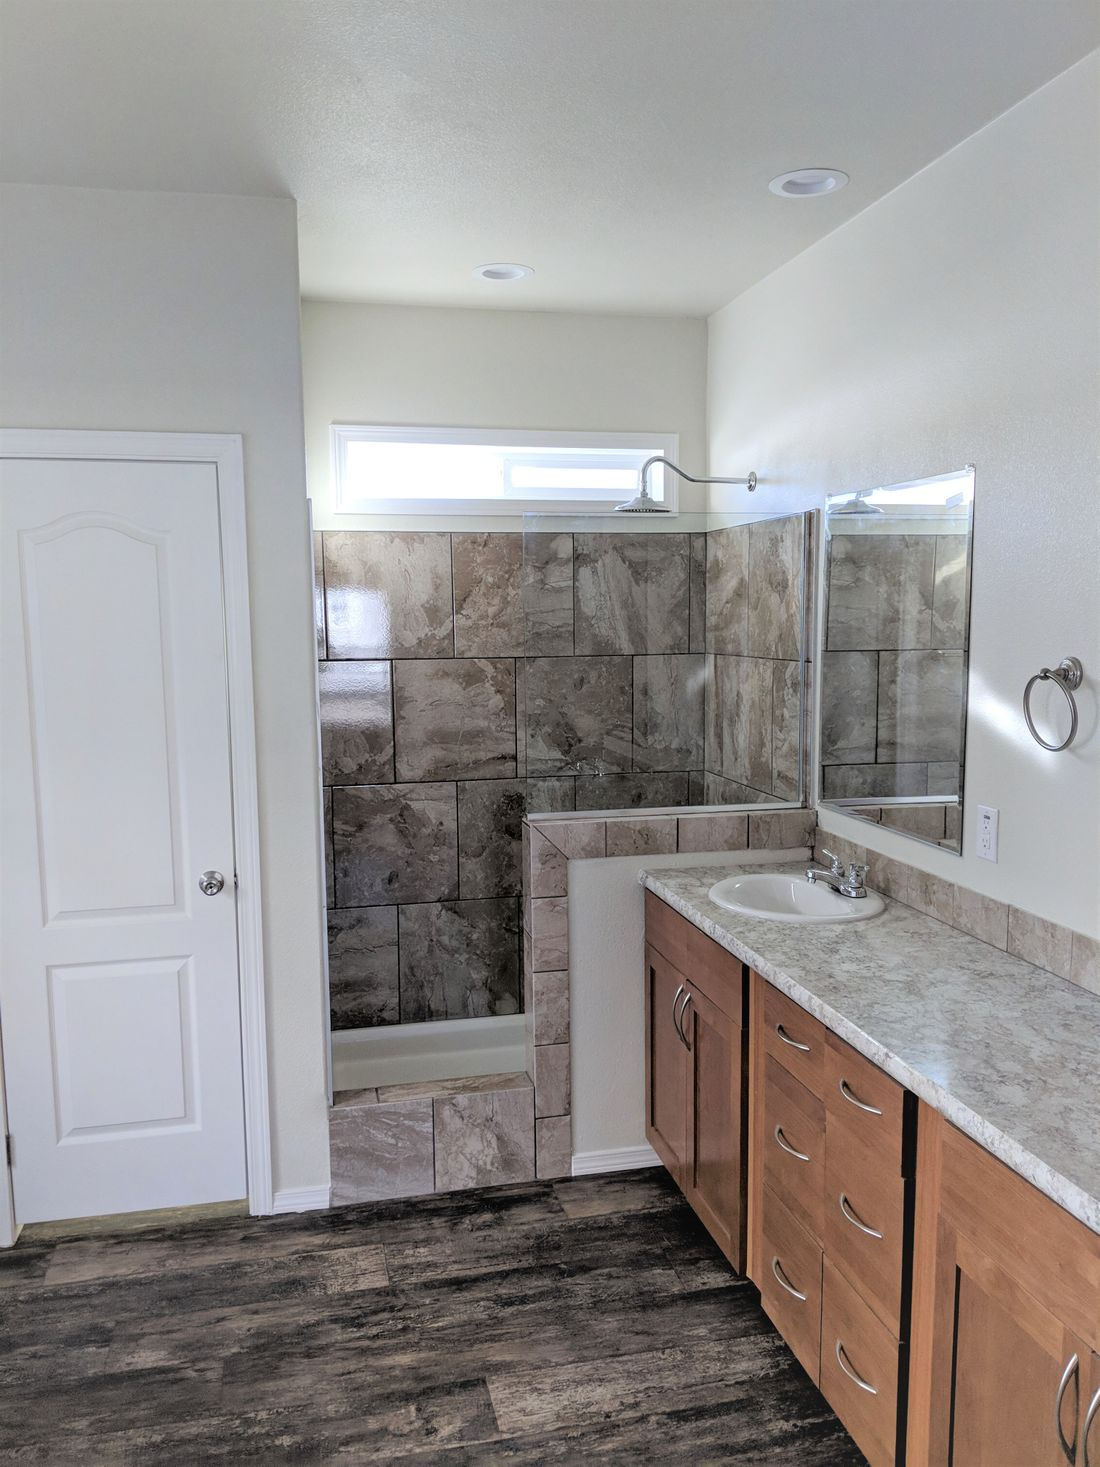 The THE ANNIVERSARY 3.0T Master Bathroom. This Manufactured Mobile Home features 3 bedrooms and 2 baths.